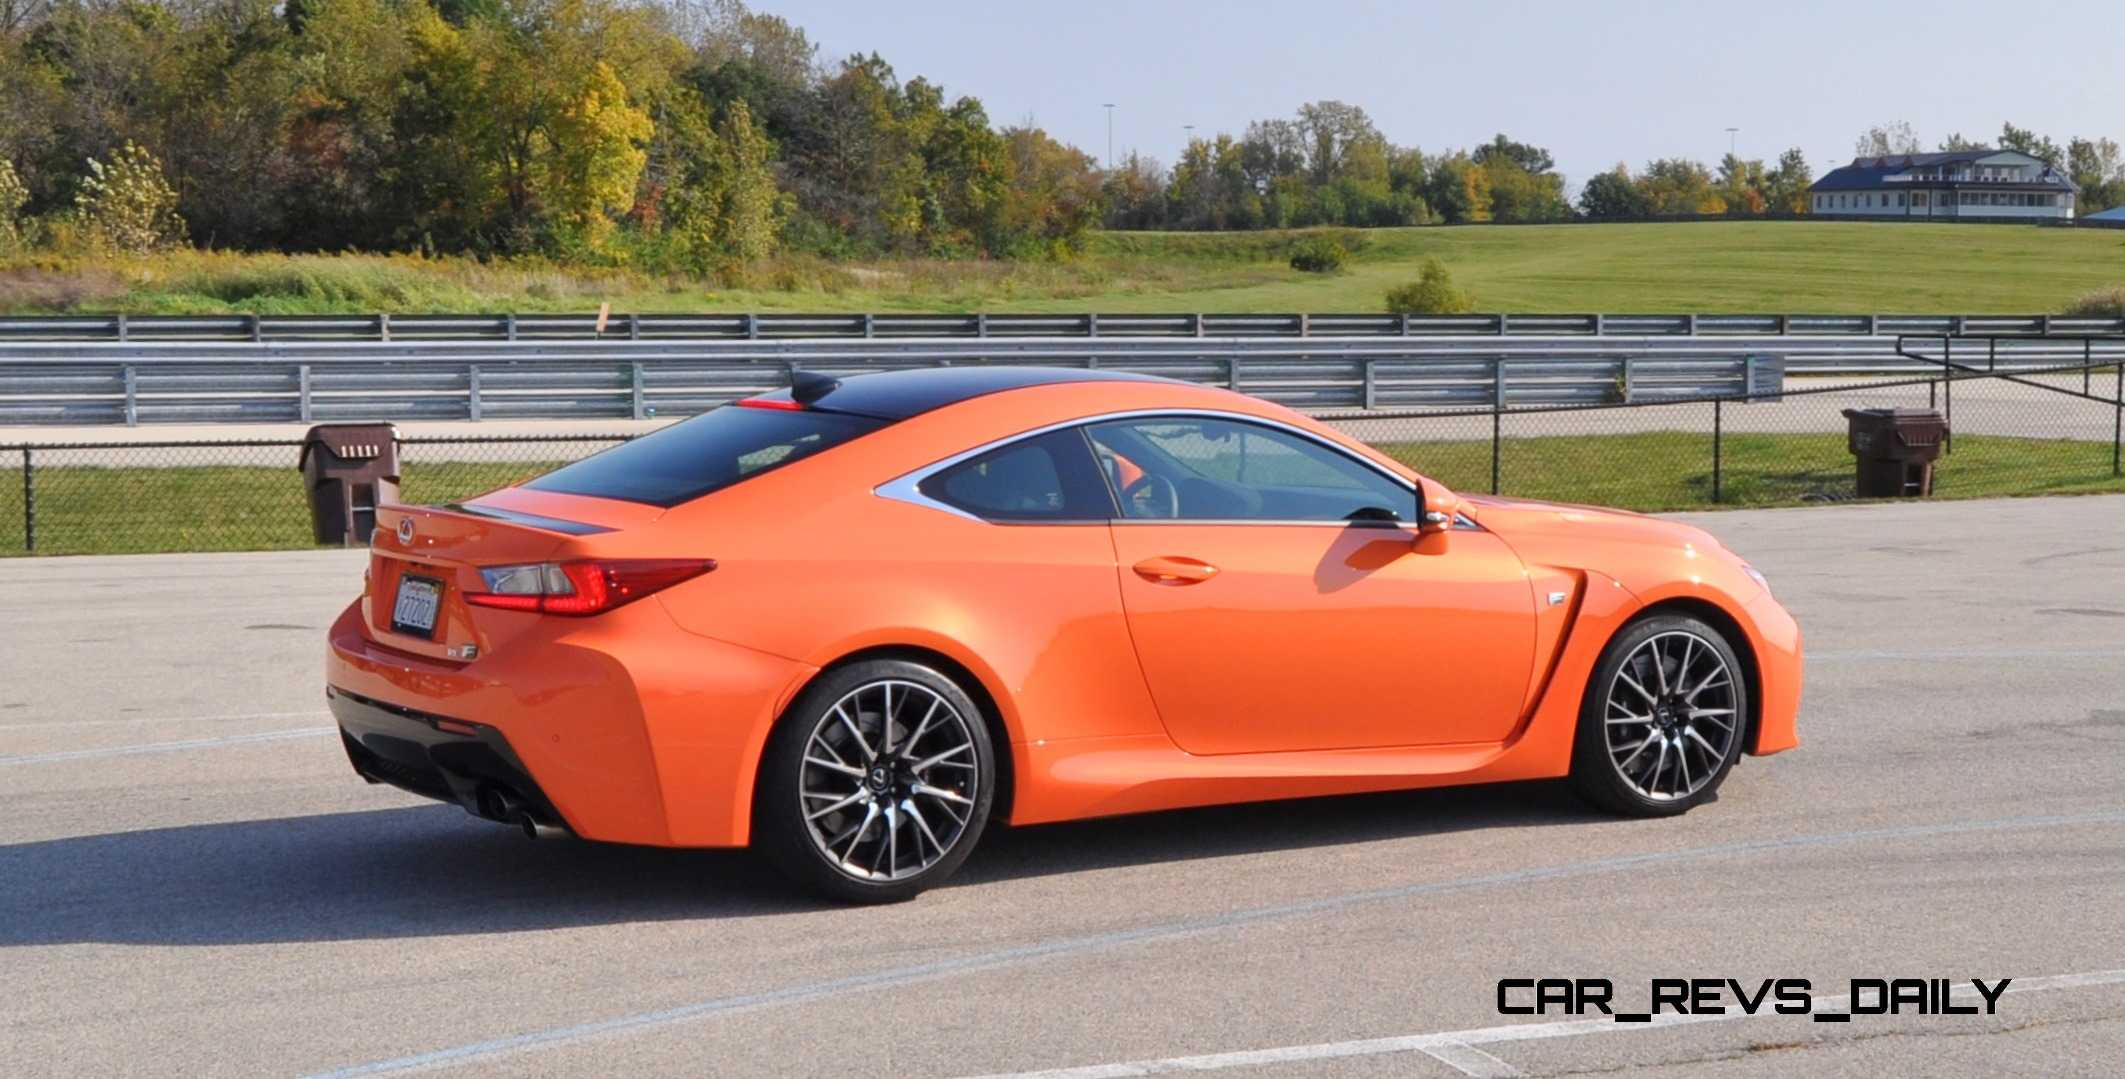 track drive review 2015 lexus rcf is roaring delight around autobahn country club 39. Black Bedroom Furniture Sets. Home Design Ideas